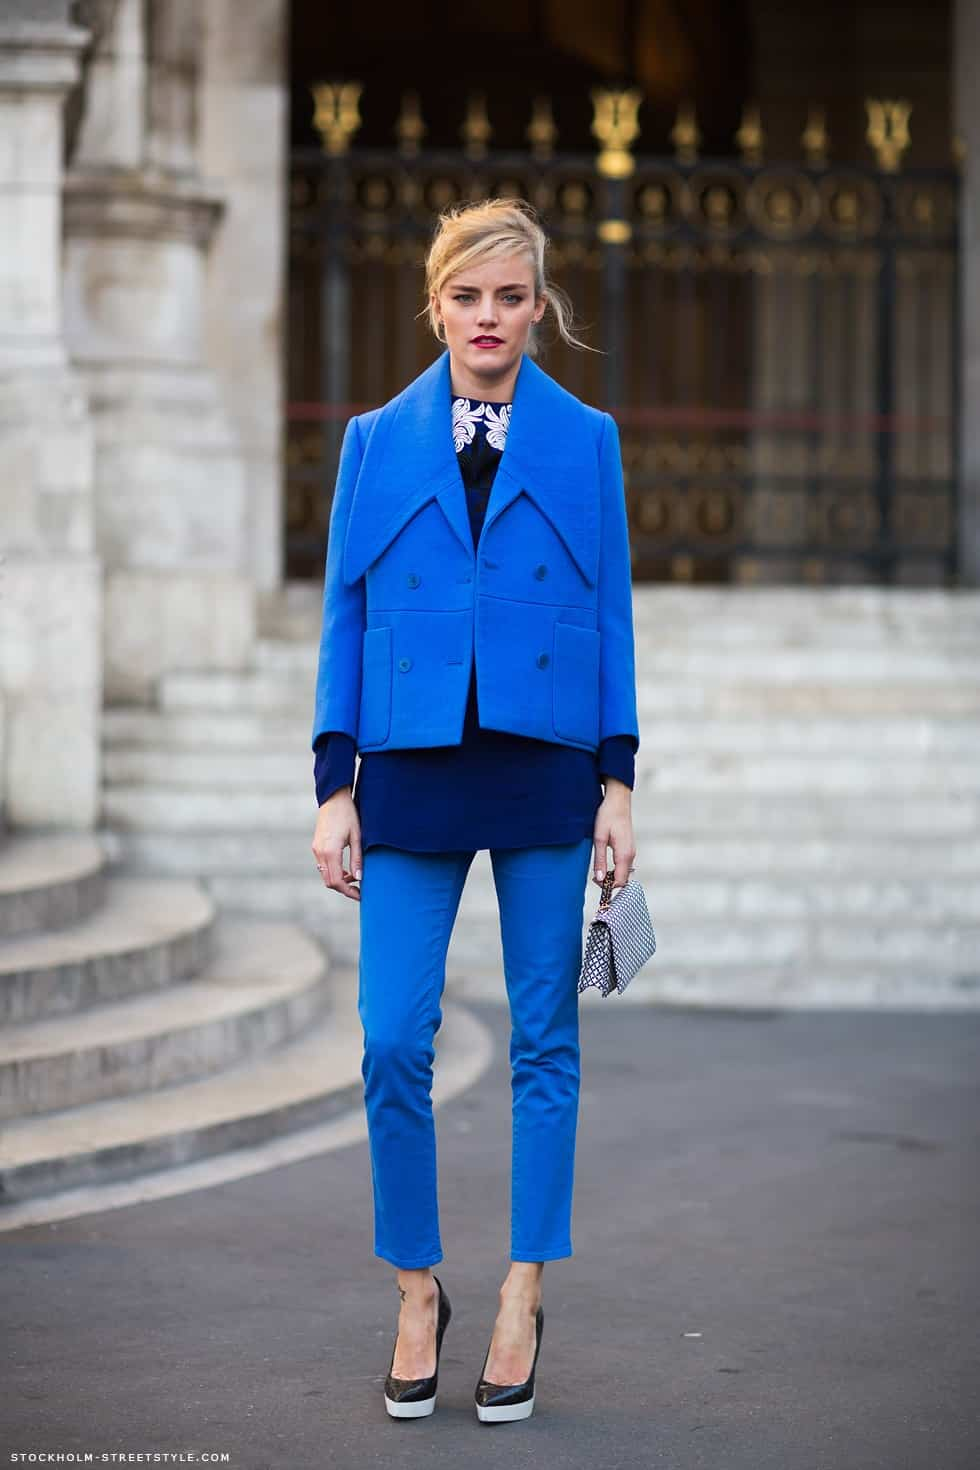 blue-outfits-spring-trend-2015-18